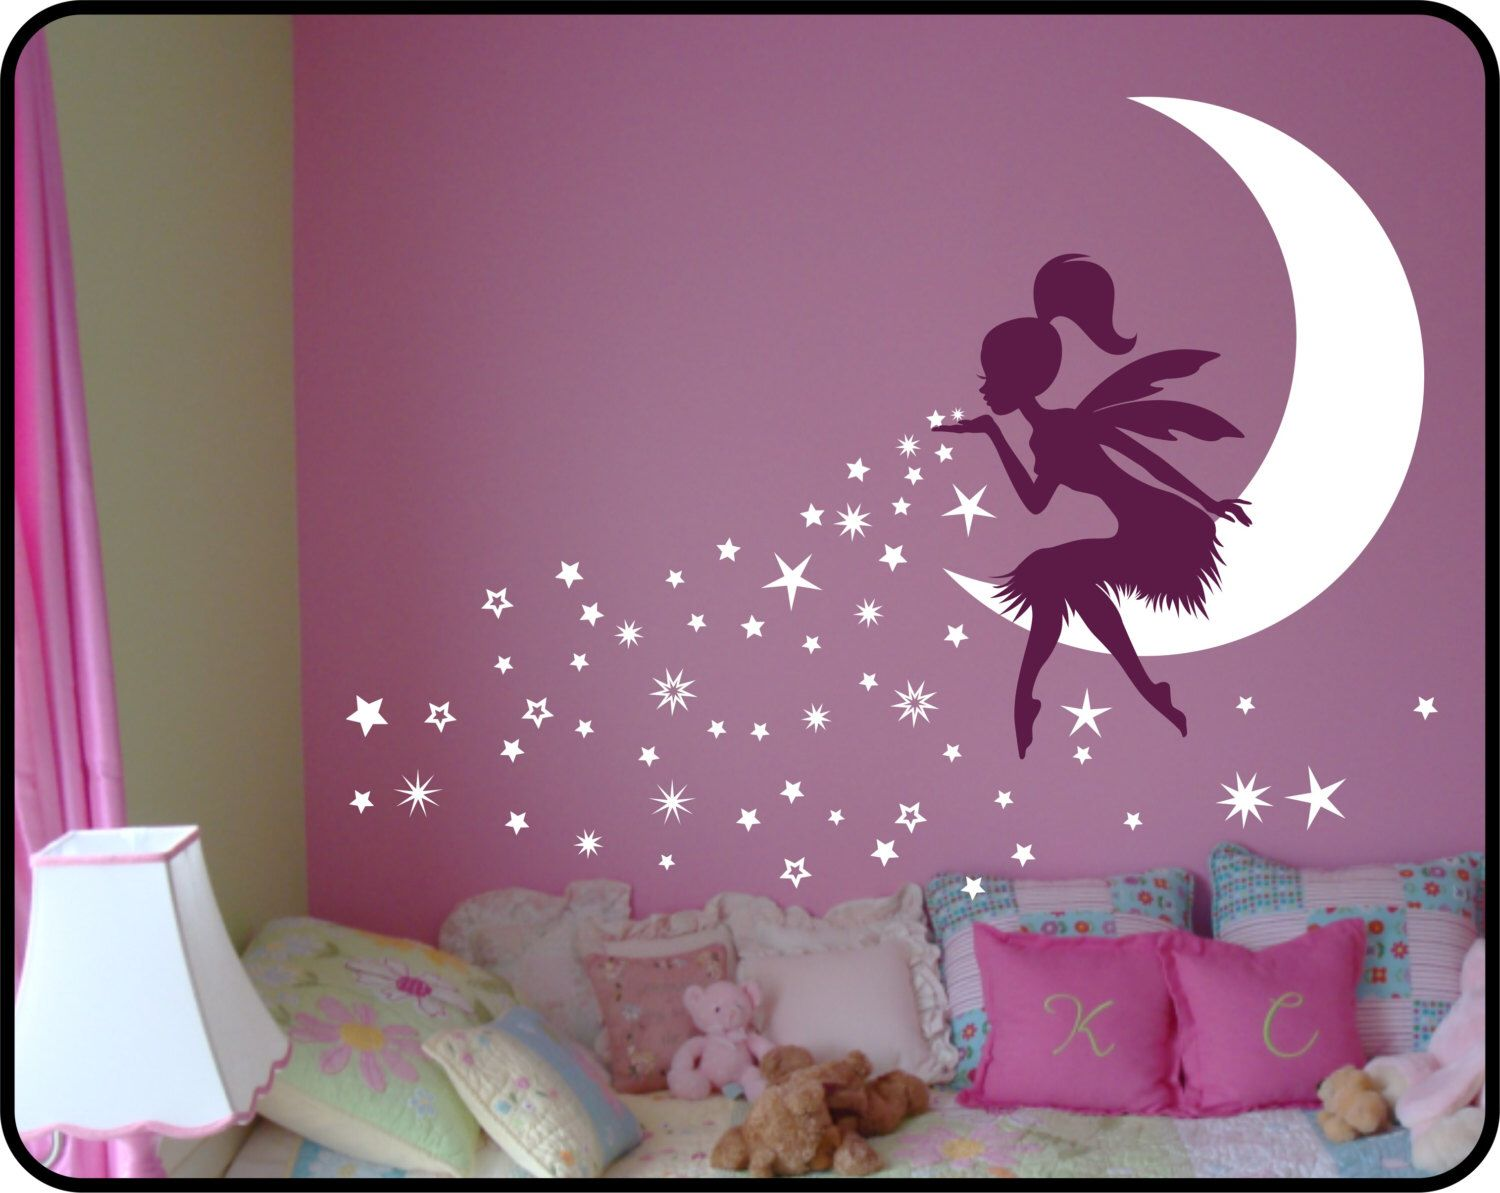 fairy wall decal fairy blowing stars wall decal fairy blowing fairy wall art fairy decor fairy wall art fairy blowing stars baby